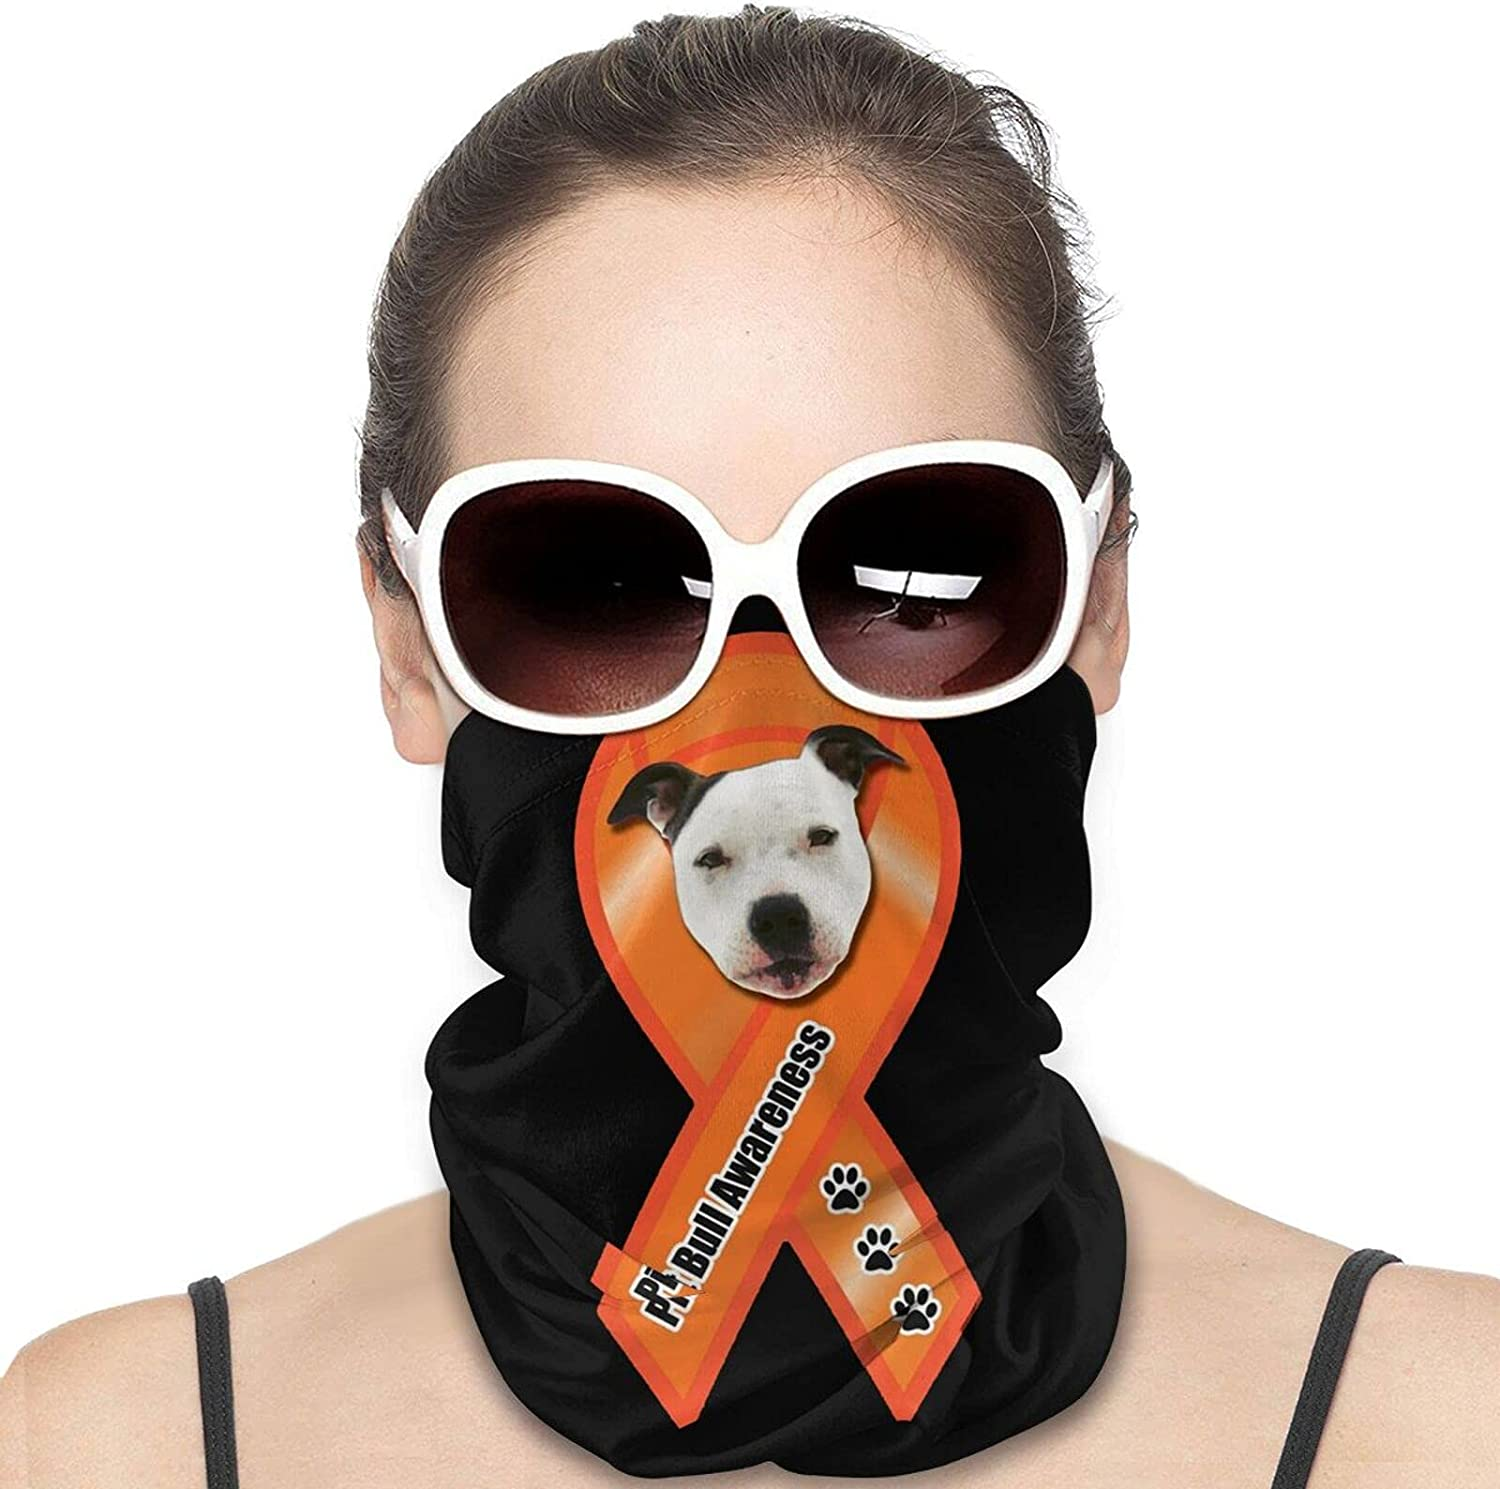 Pit Bull Awareness Ribbon Magnet Round Neck Gaiter Bandnas Face Cover Uv Protection Prevent bask in Ice Scarf Headbands Perfect for Motorcycle Cycling Running Festival Raves Outdoors